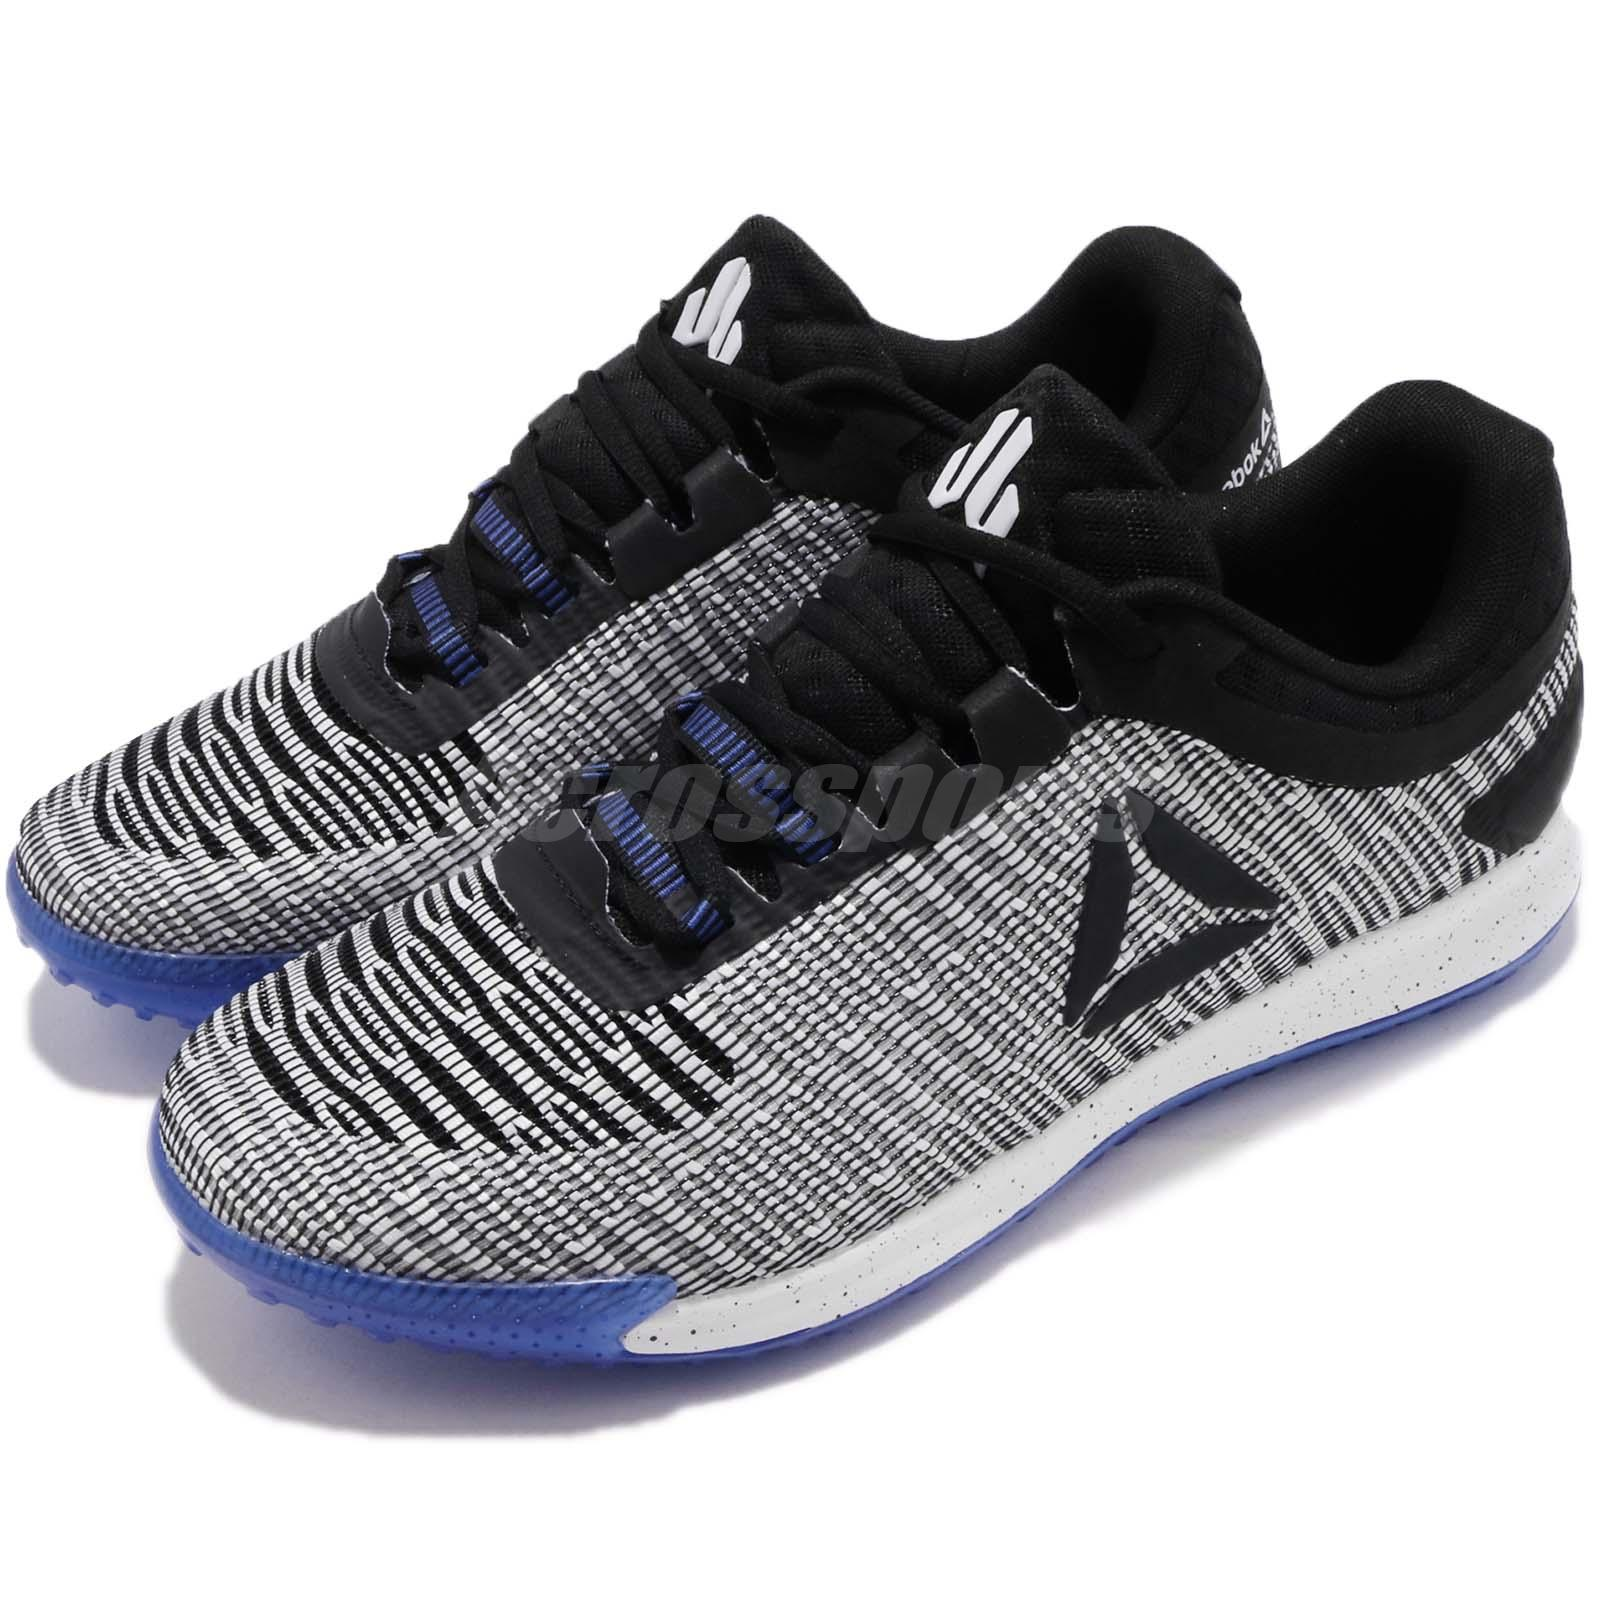 e568a968248 Details about Reebok JJ II Low 2 Watt Black Blue Men Cross Training Gym  Shoes Trainers CN2220